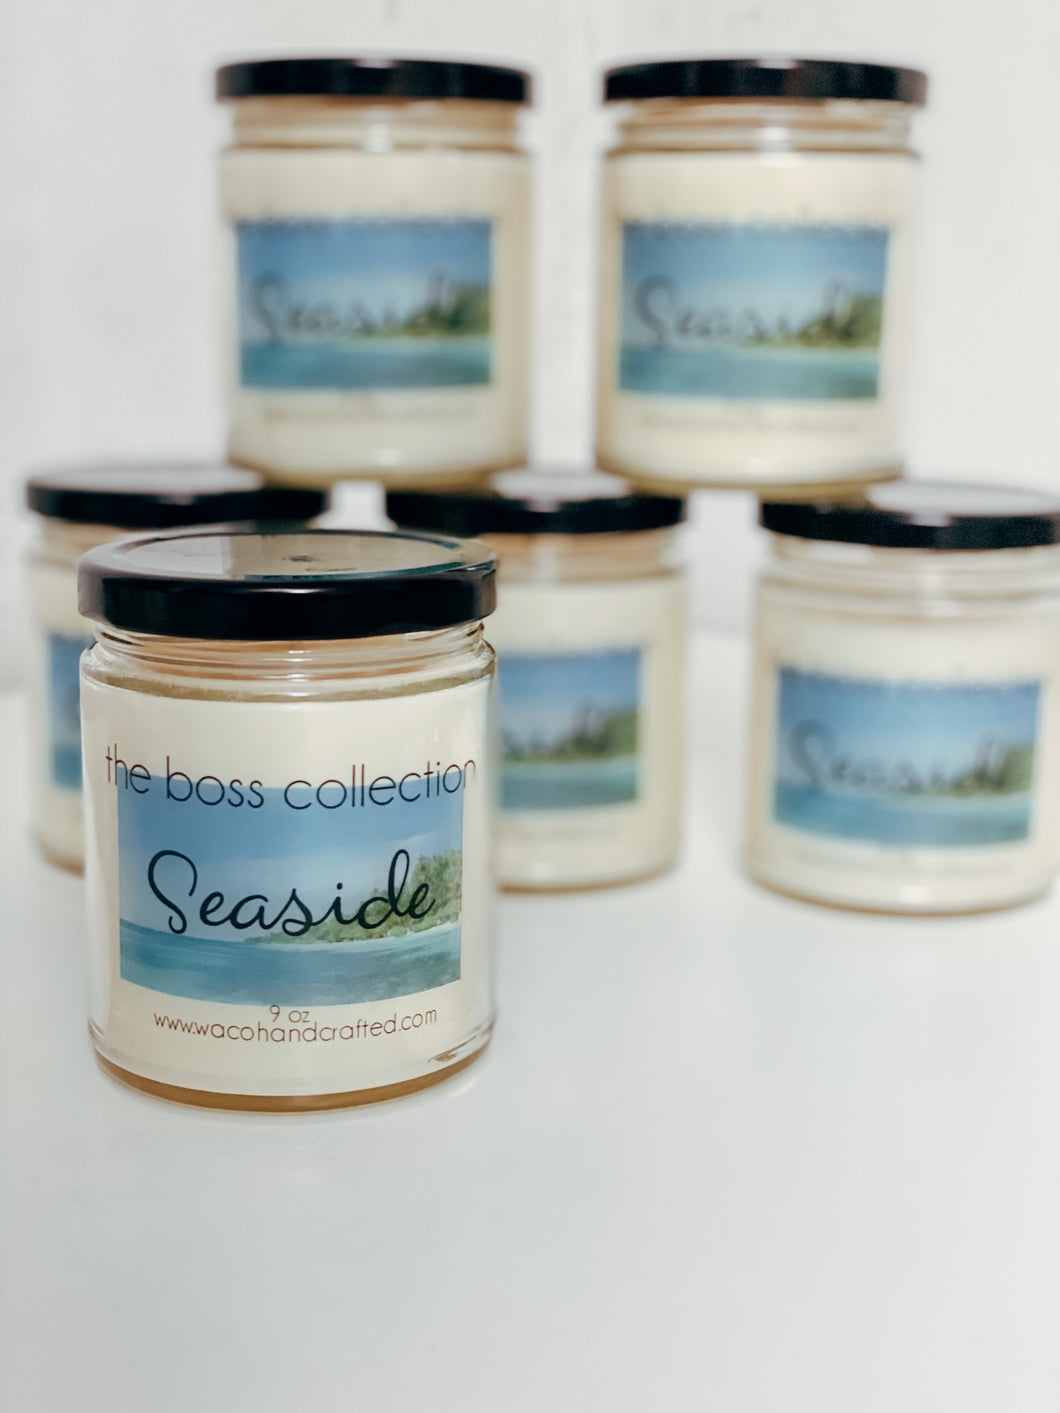 Seaside 9 oz Scented Candle - Waco Handcrafted